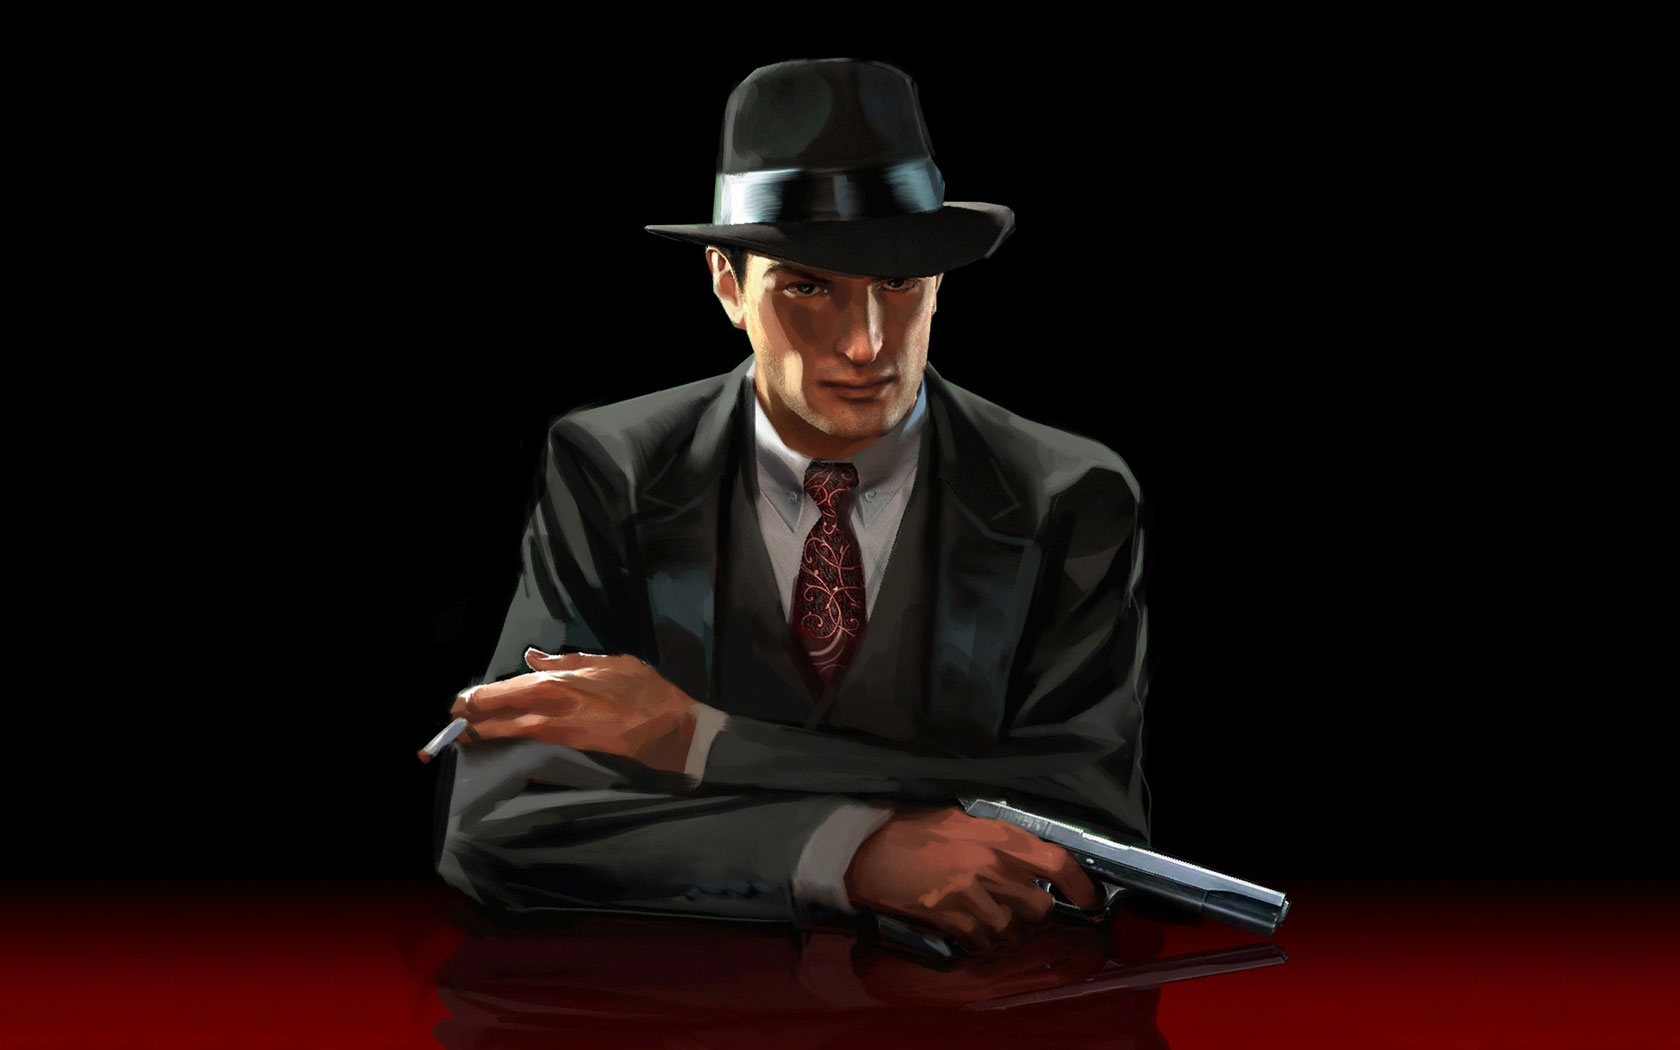 Mafia (Video Game) HD Wallpapers | Backgrounds - Wallpaper Abyss